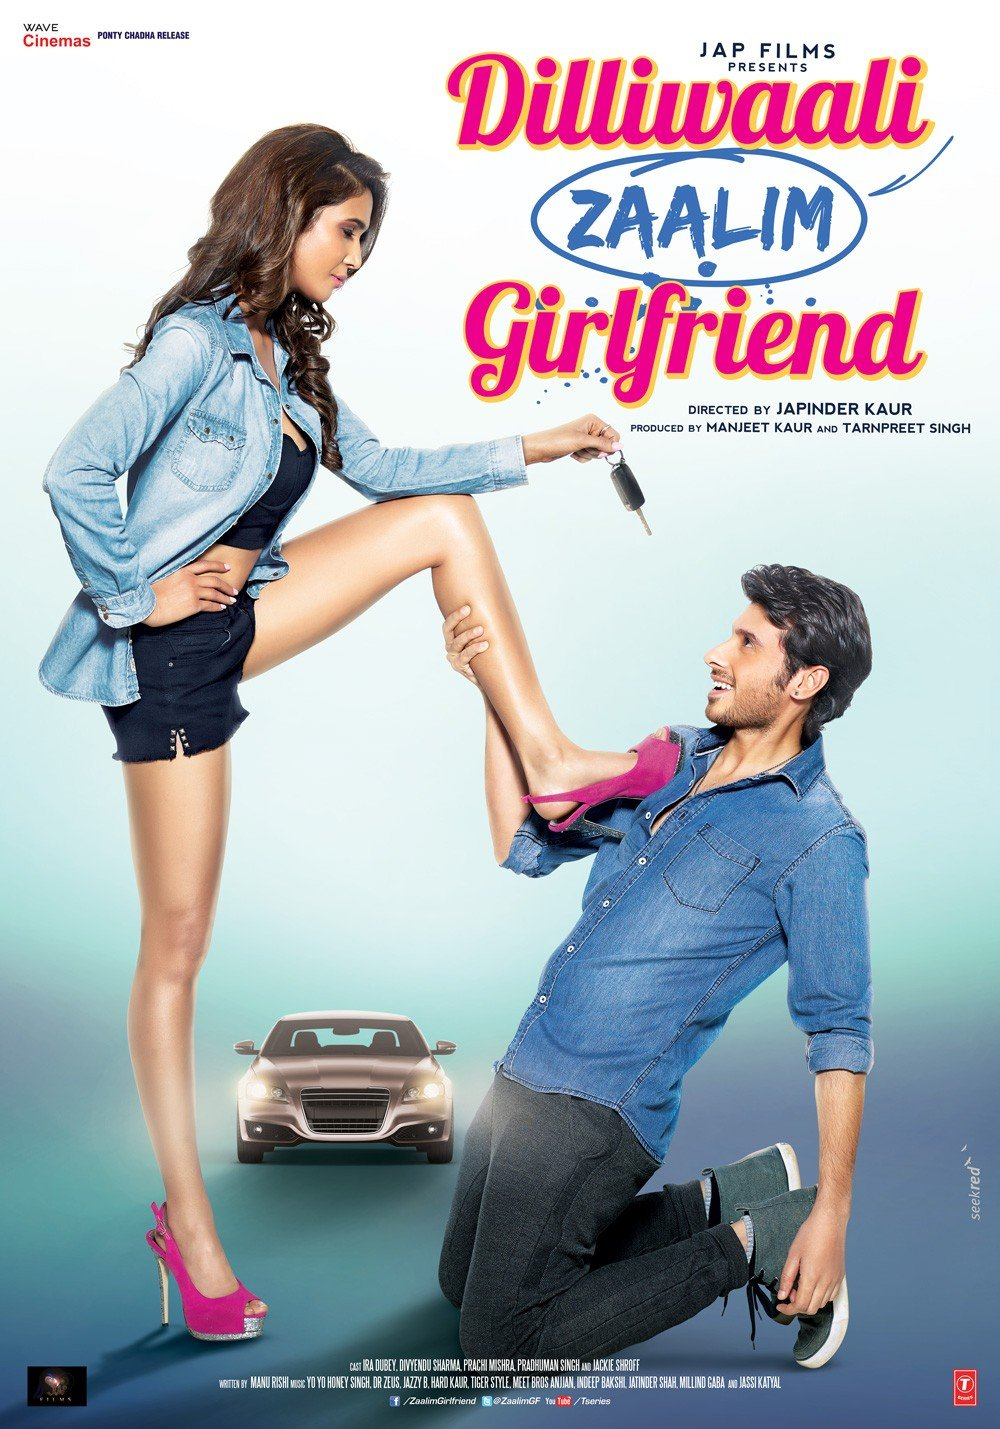 Dilliwaali Zaalim Girlfriend Movie Poster